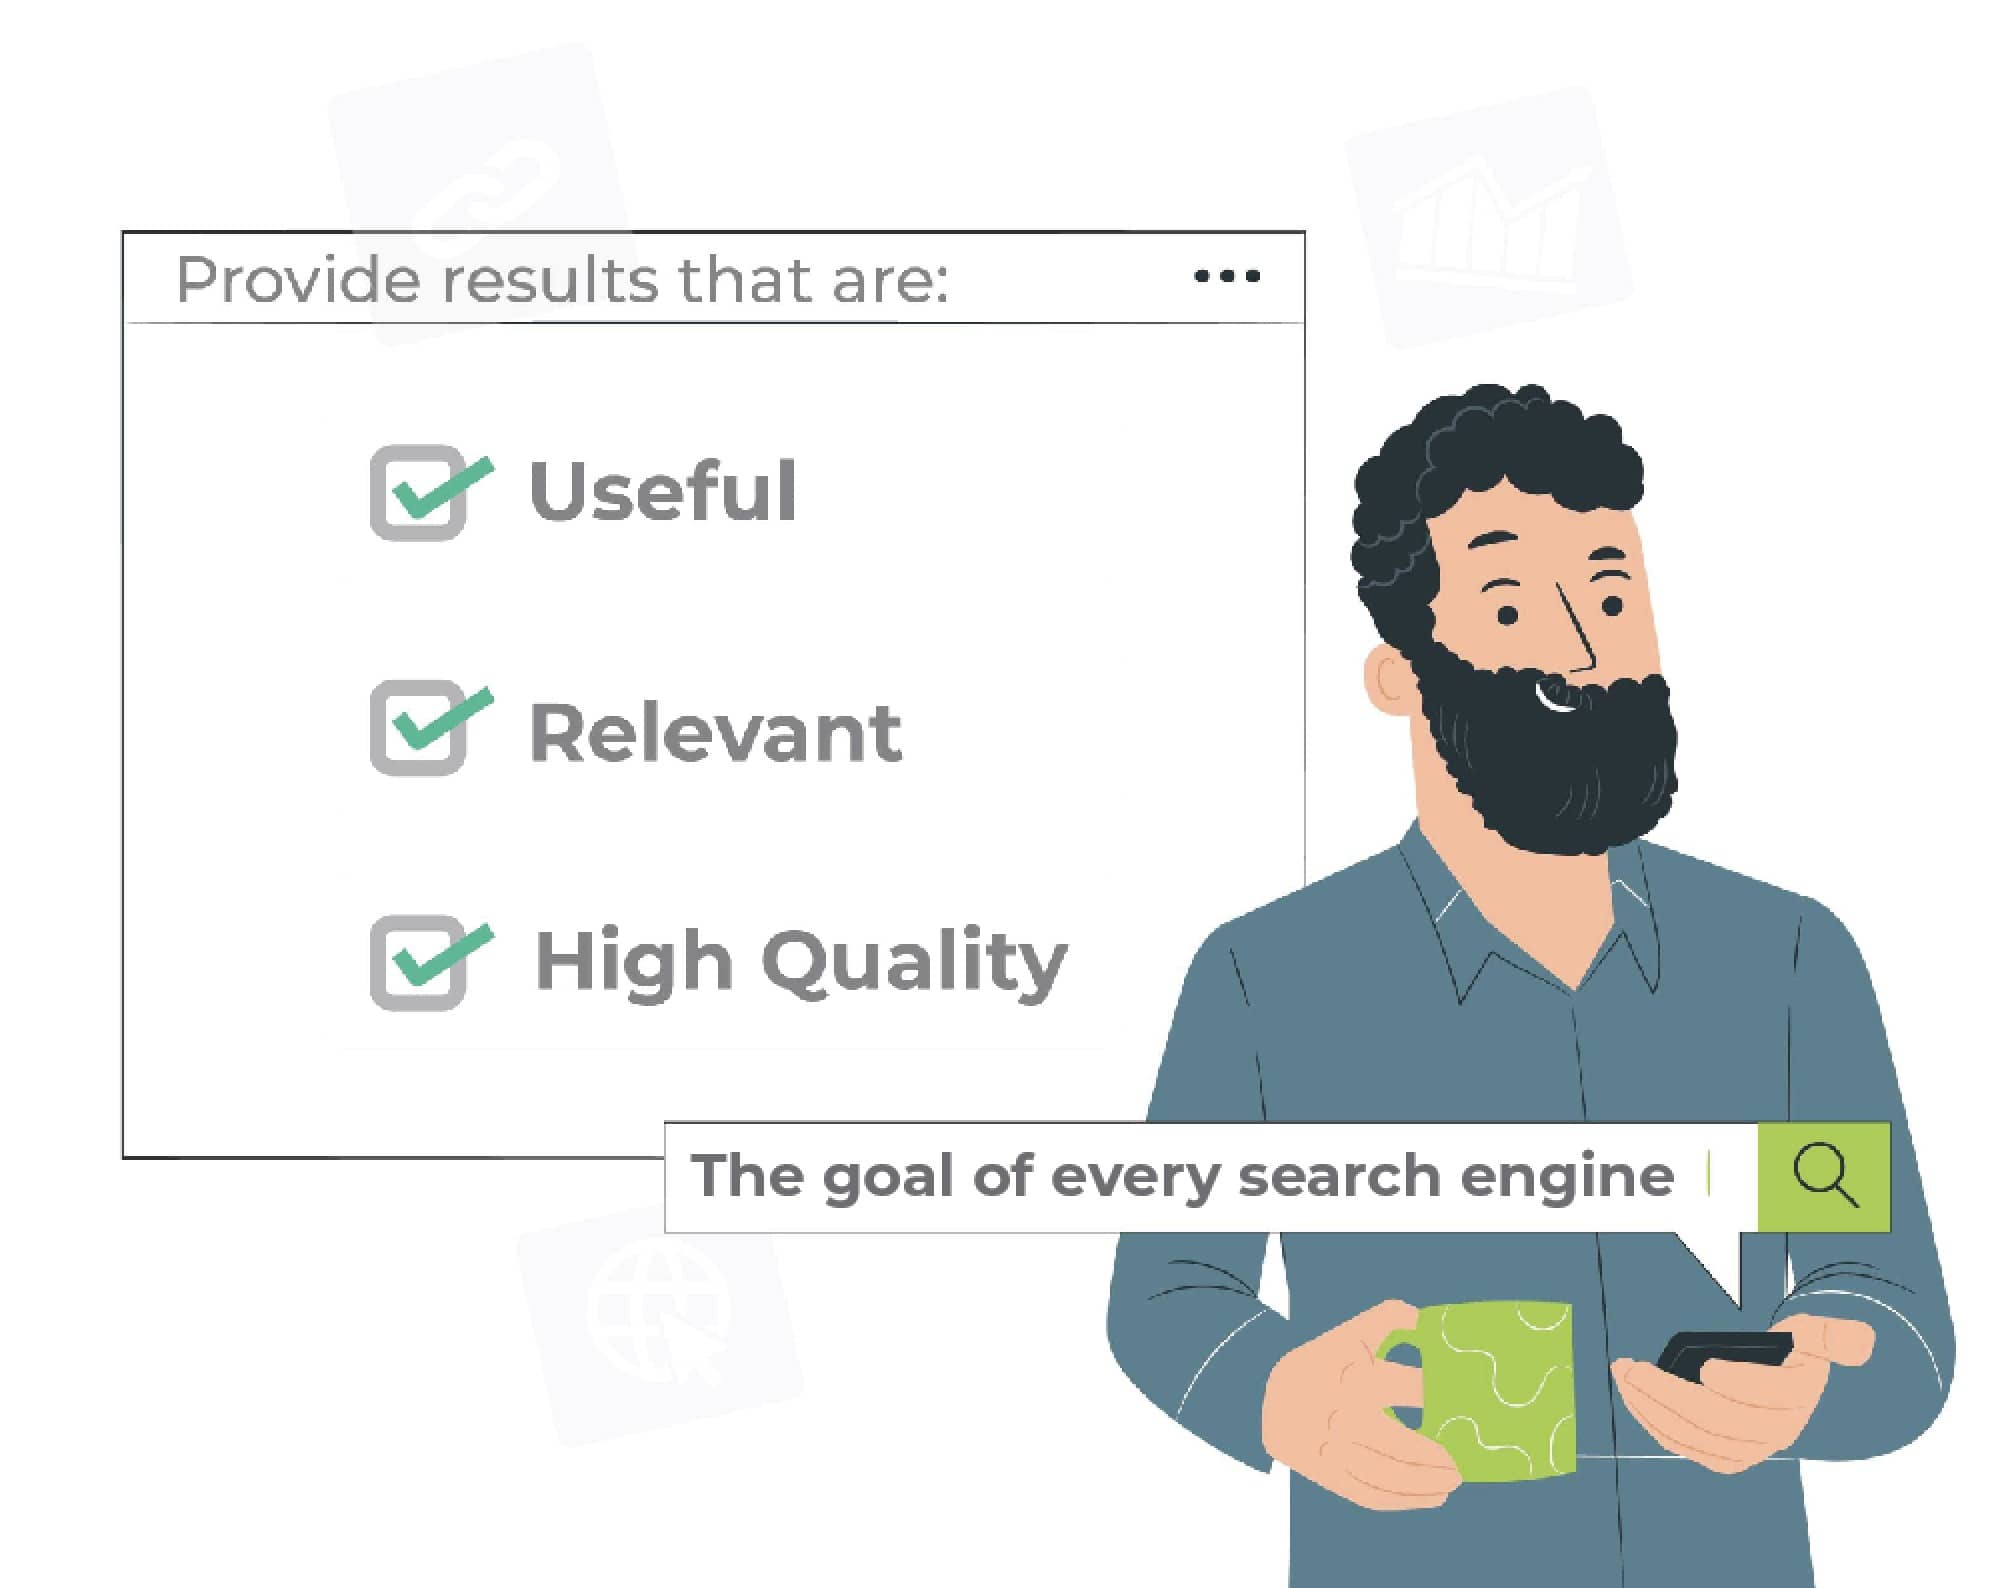 goal of every search engine